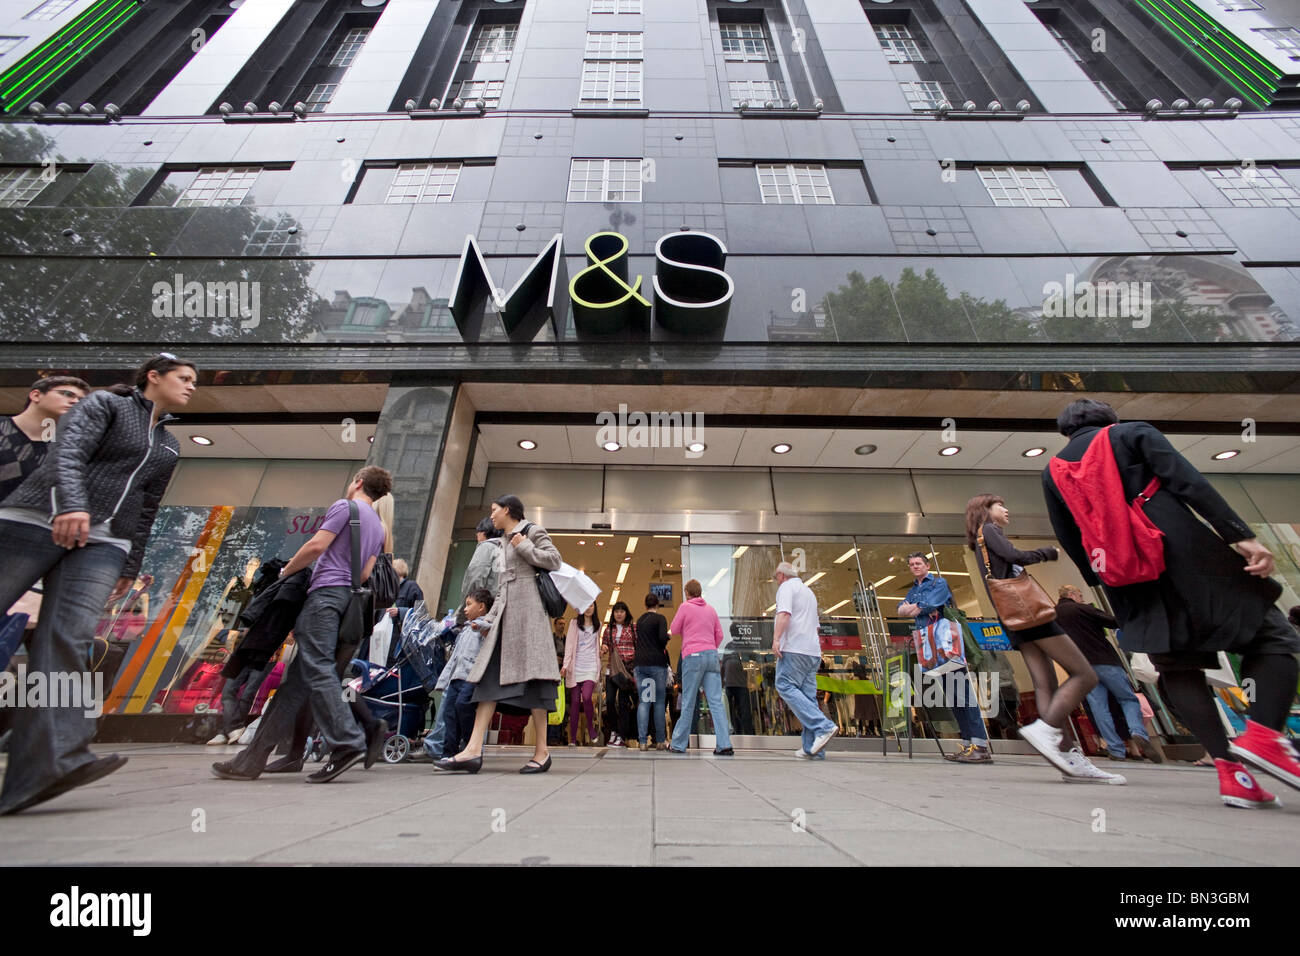 Marks and Spencer branch in London - Stock Image